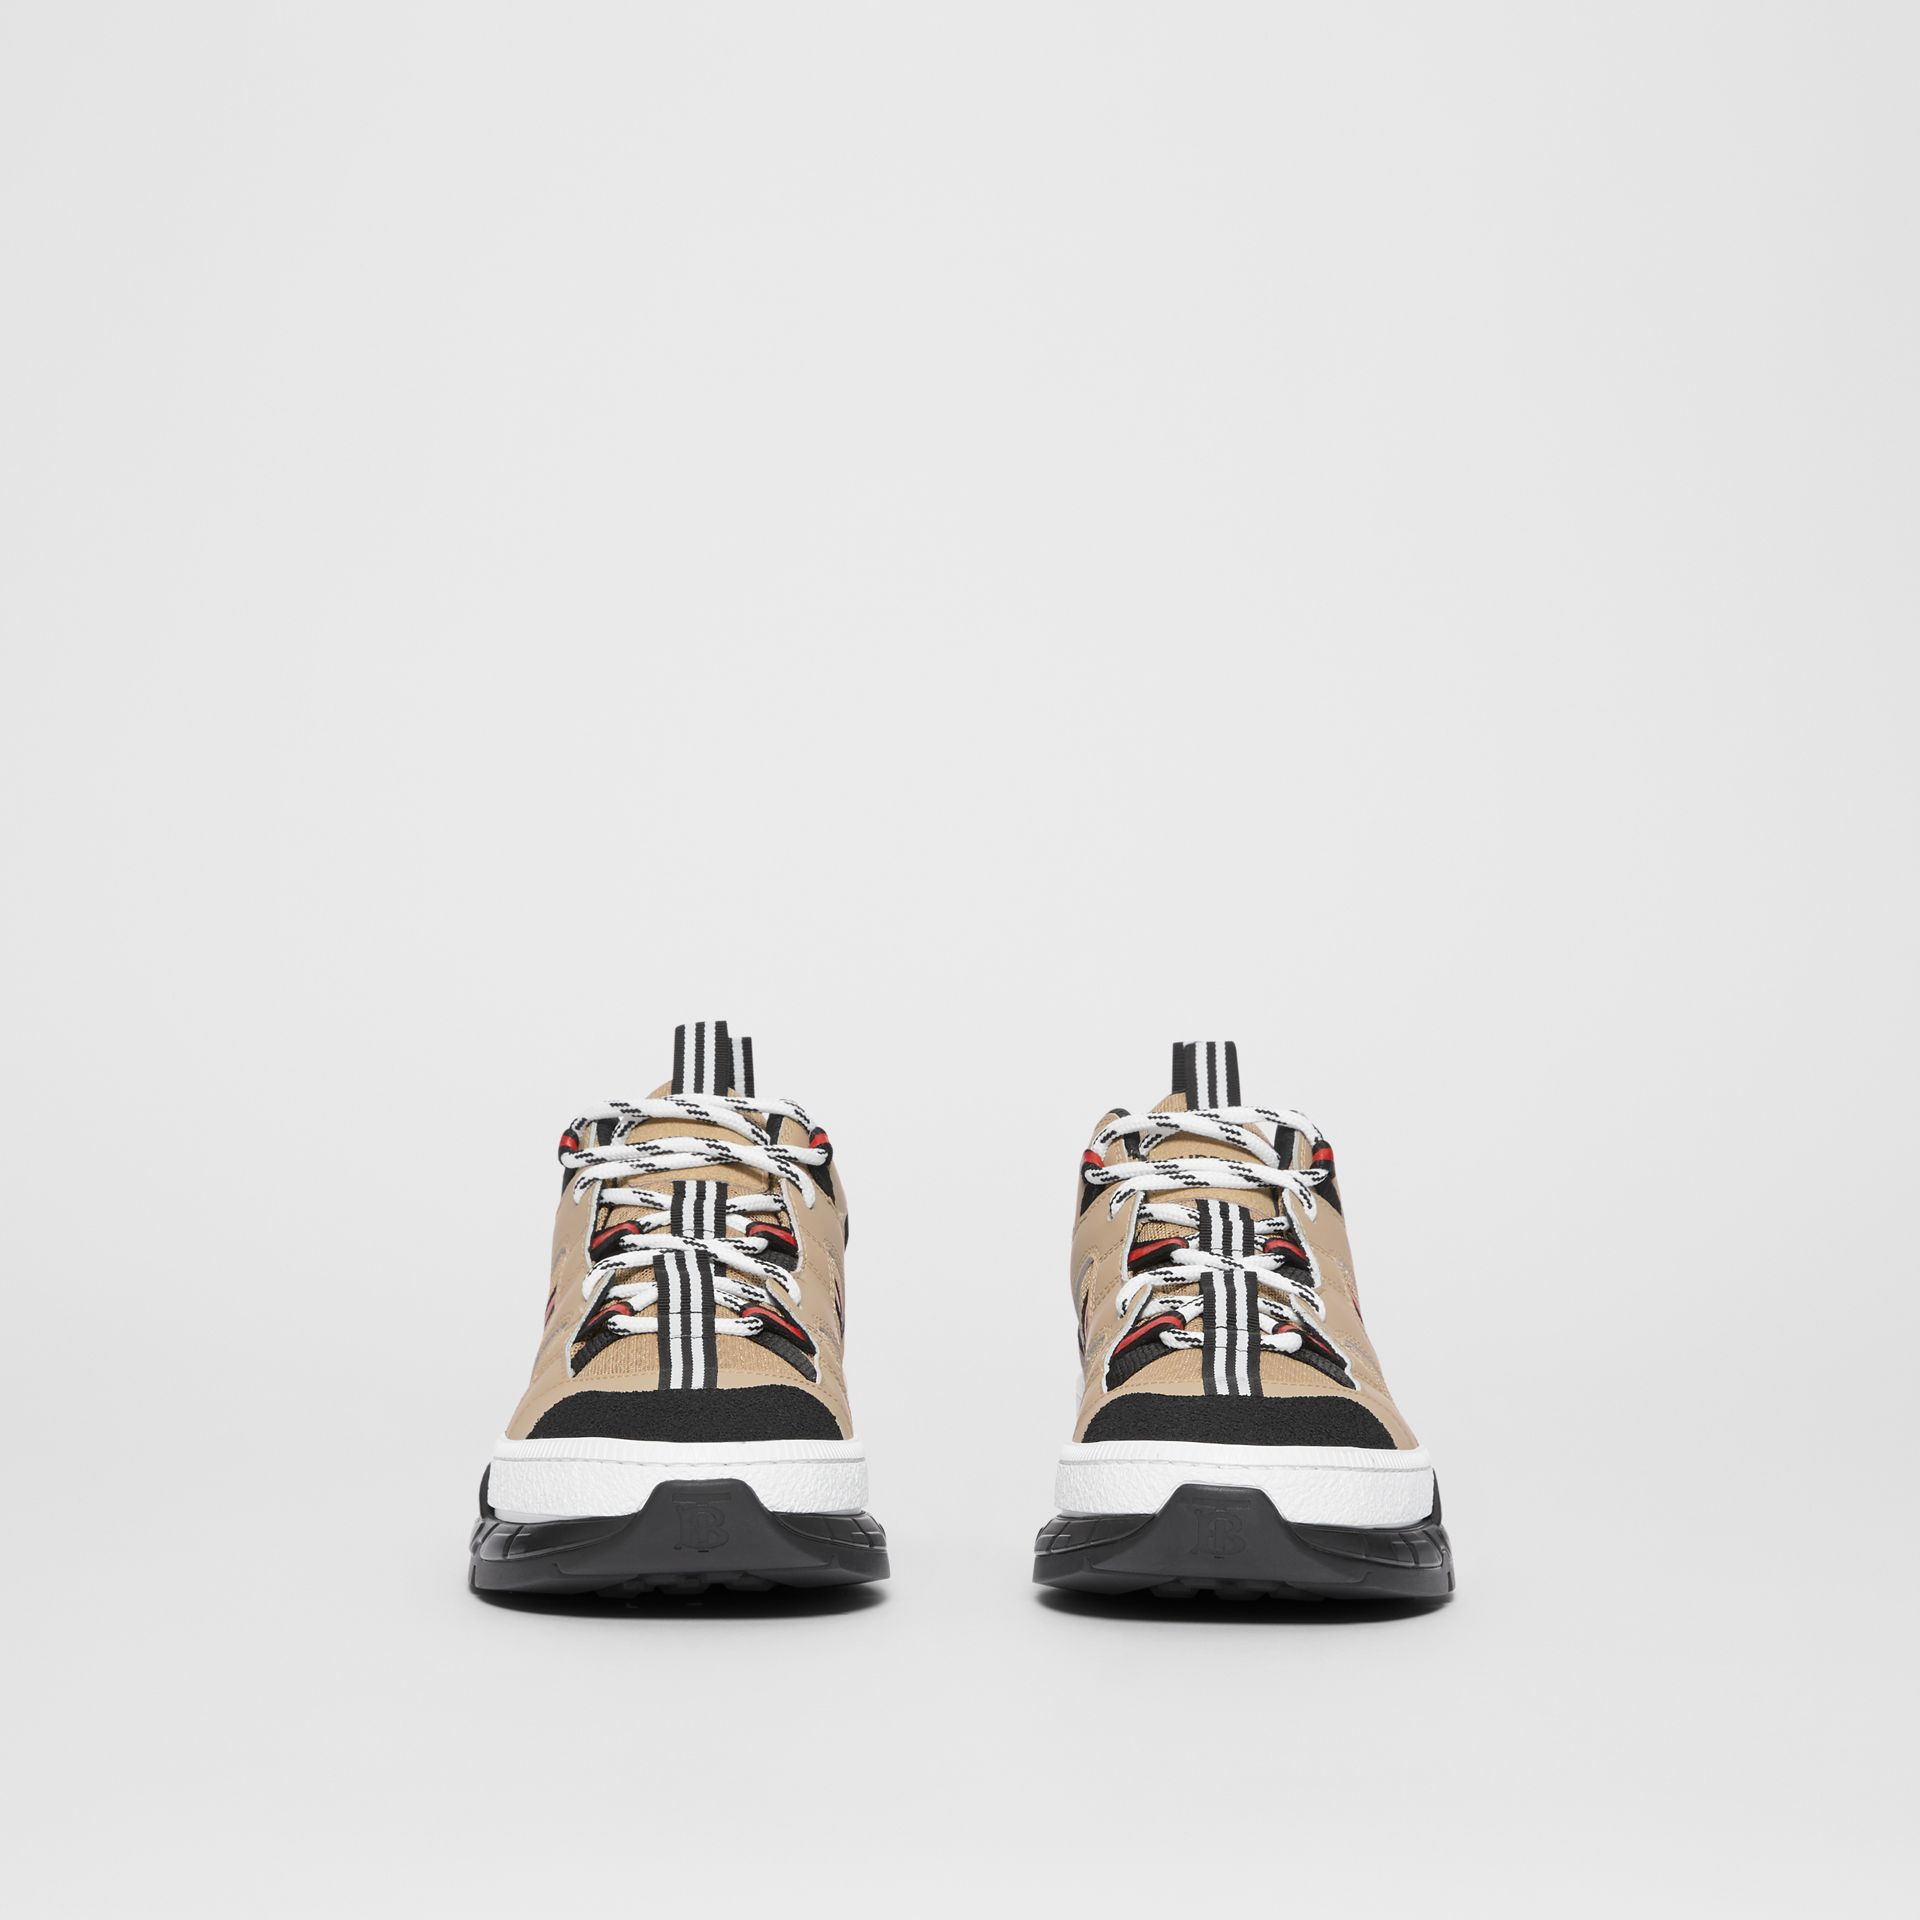 Monogram Motif Mesh and Leather Sneakers in Beige - Women | Burberry - gallery image 2